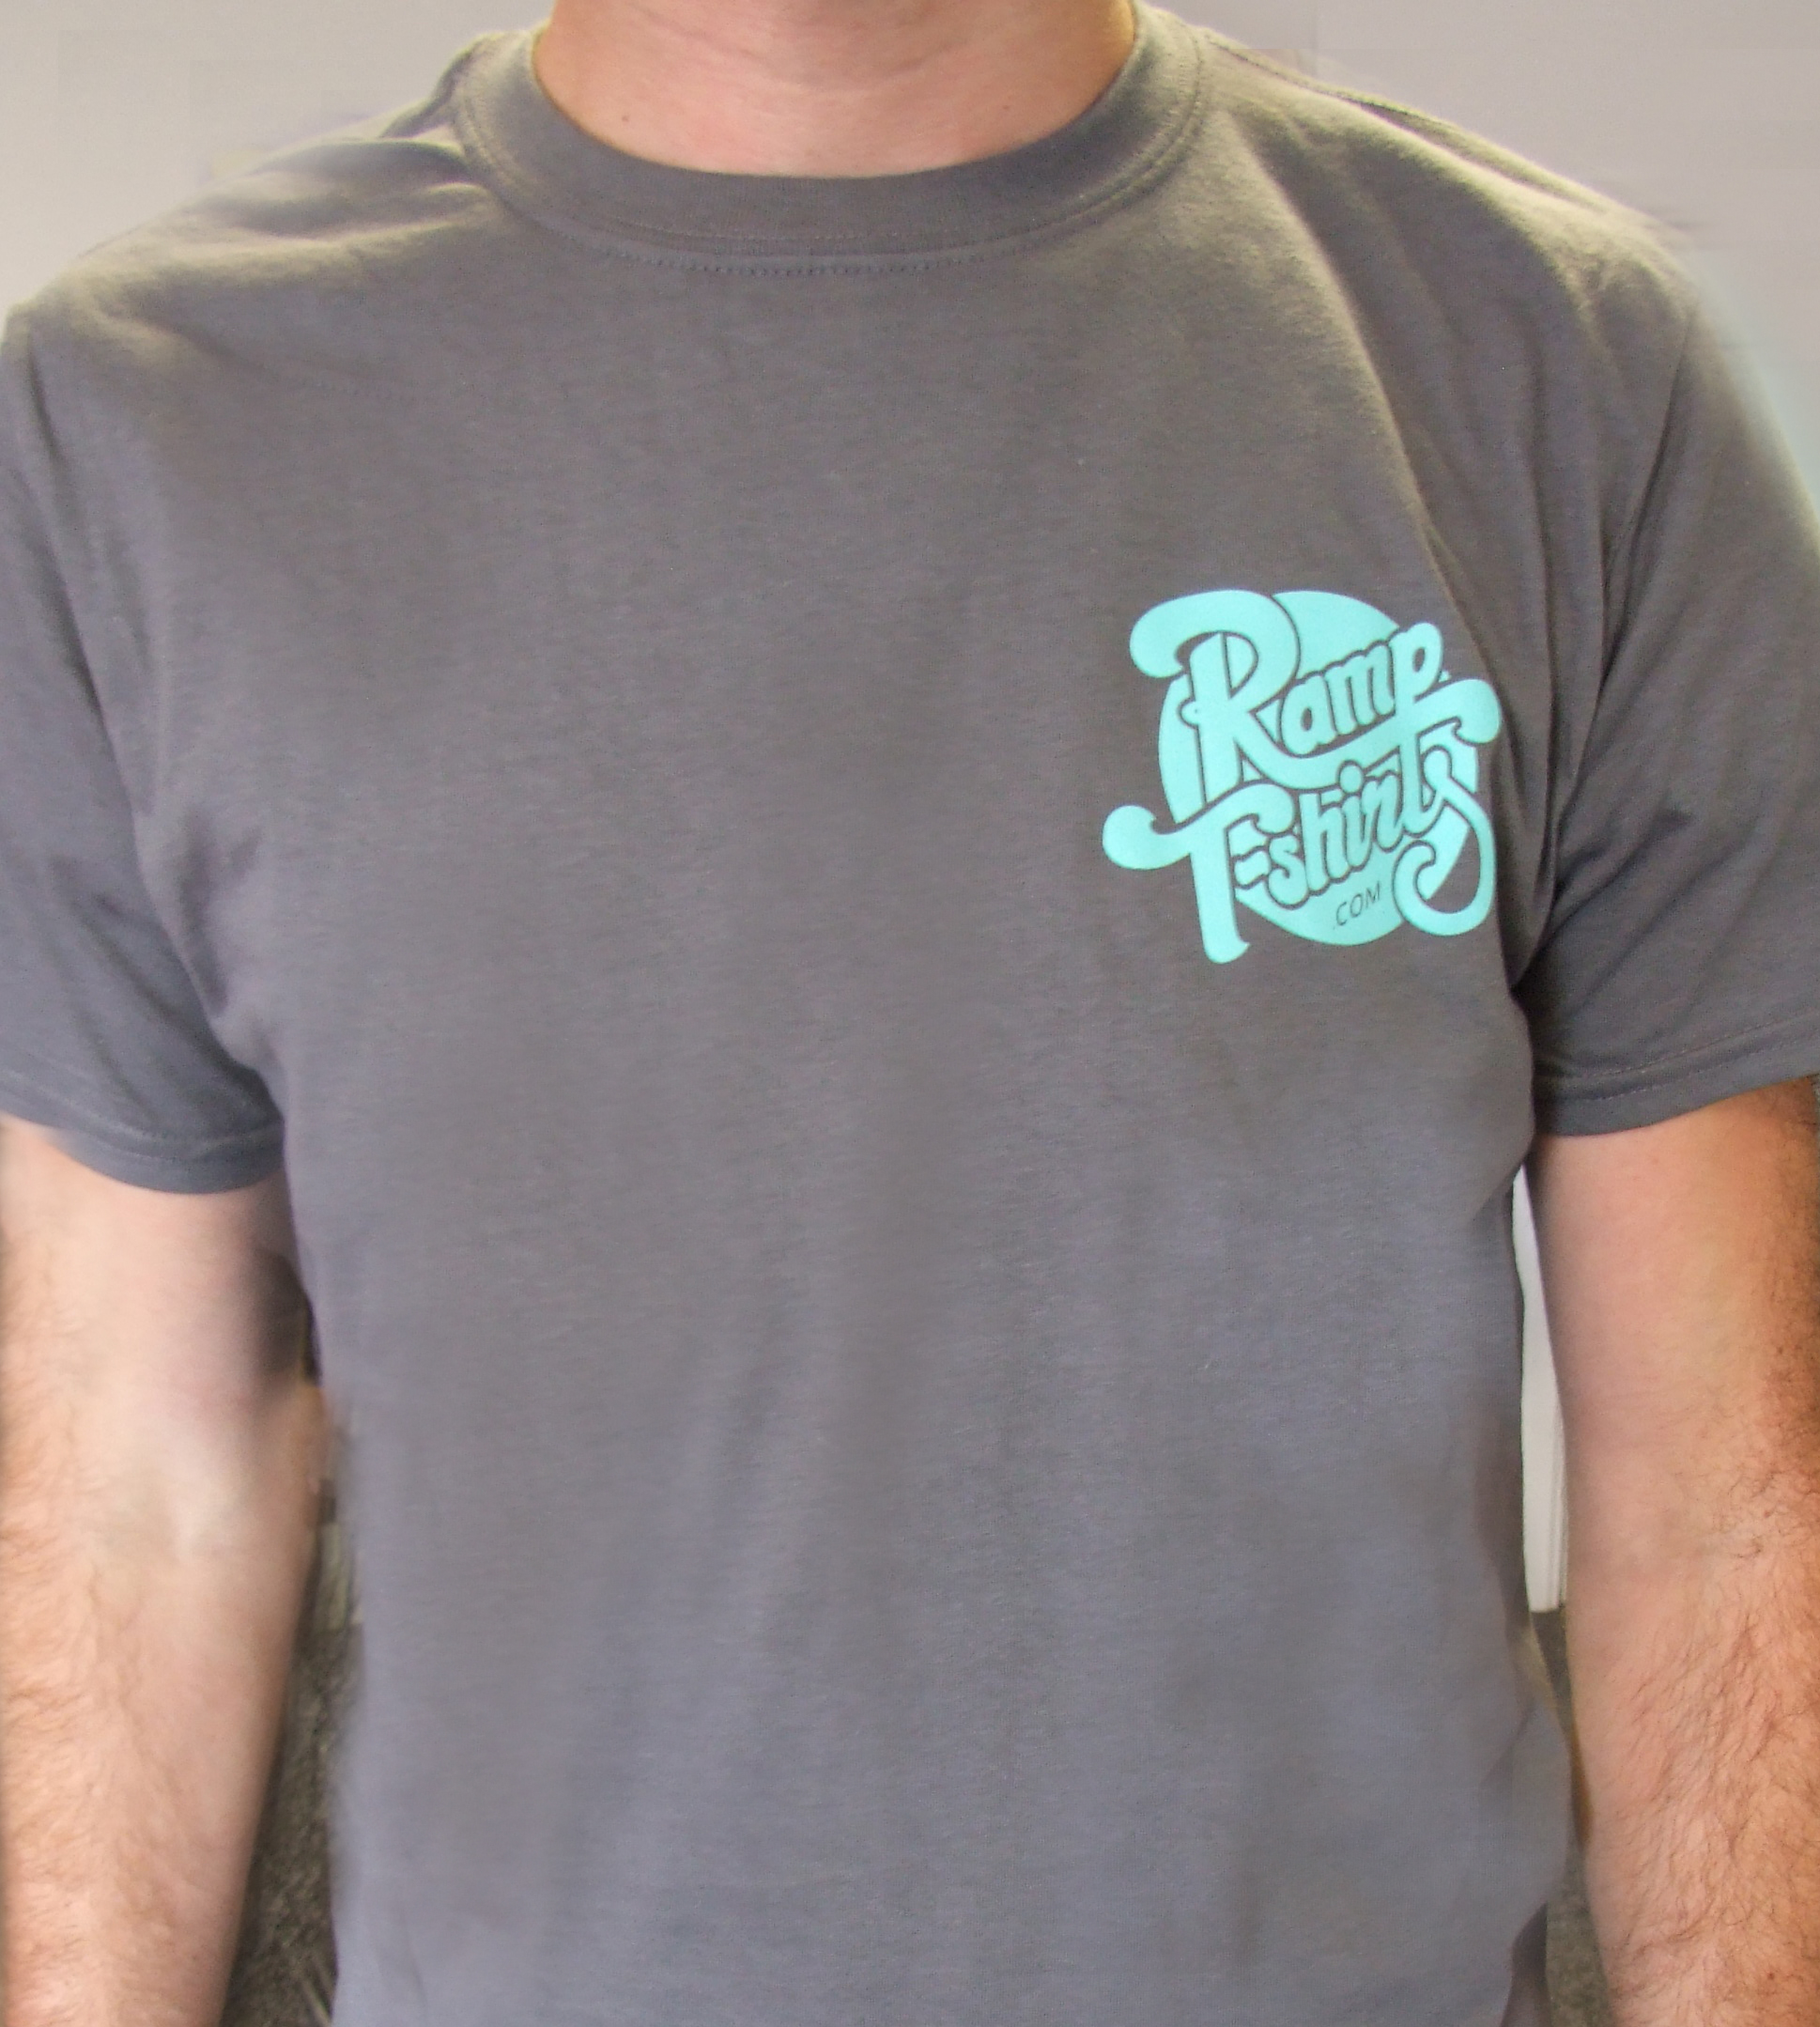 Ramp tshirts LTD edition tshirt no.3